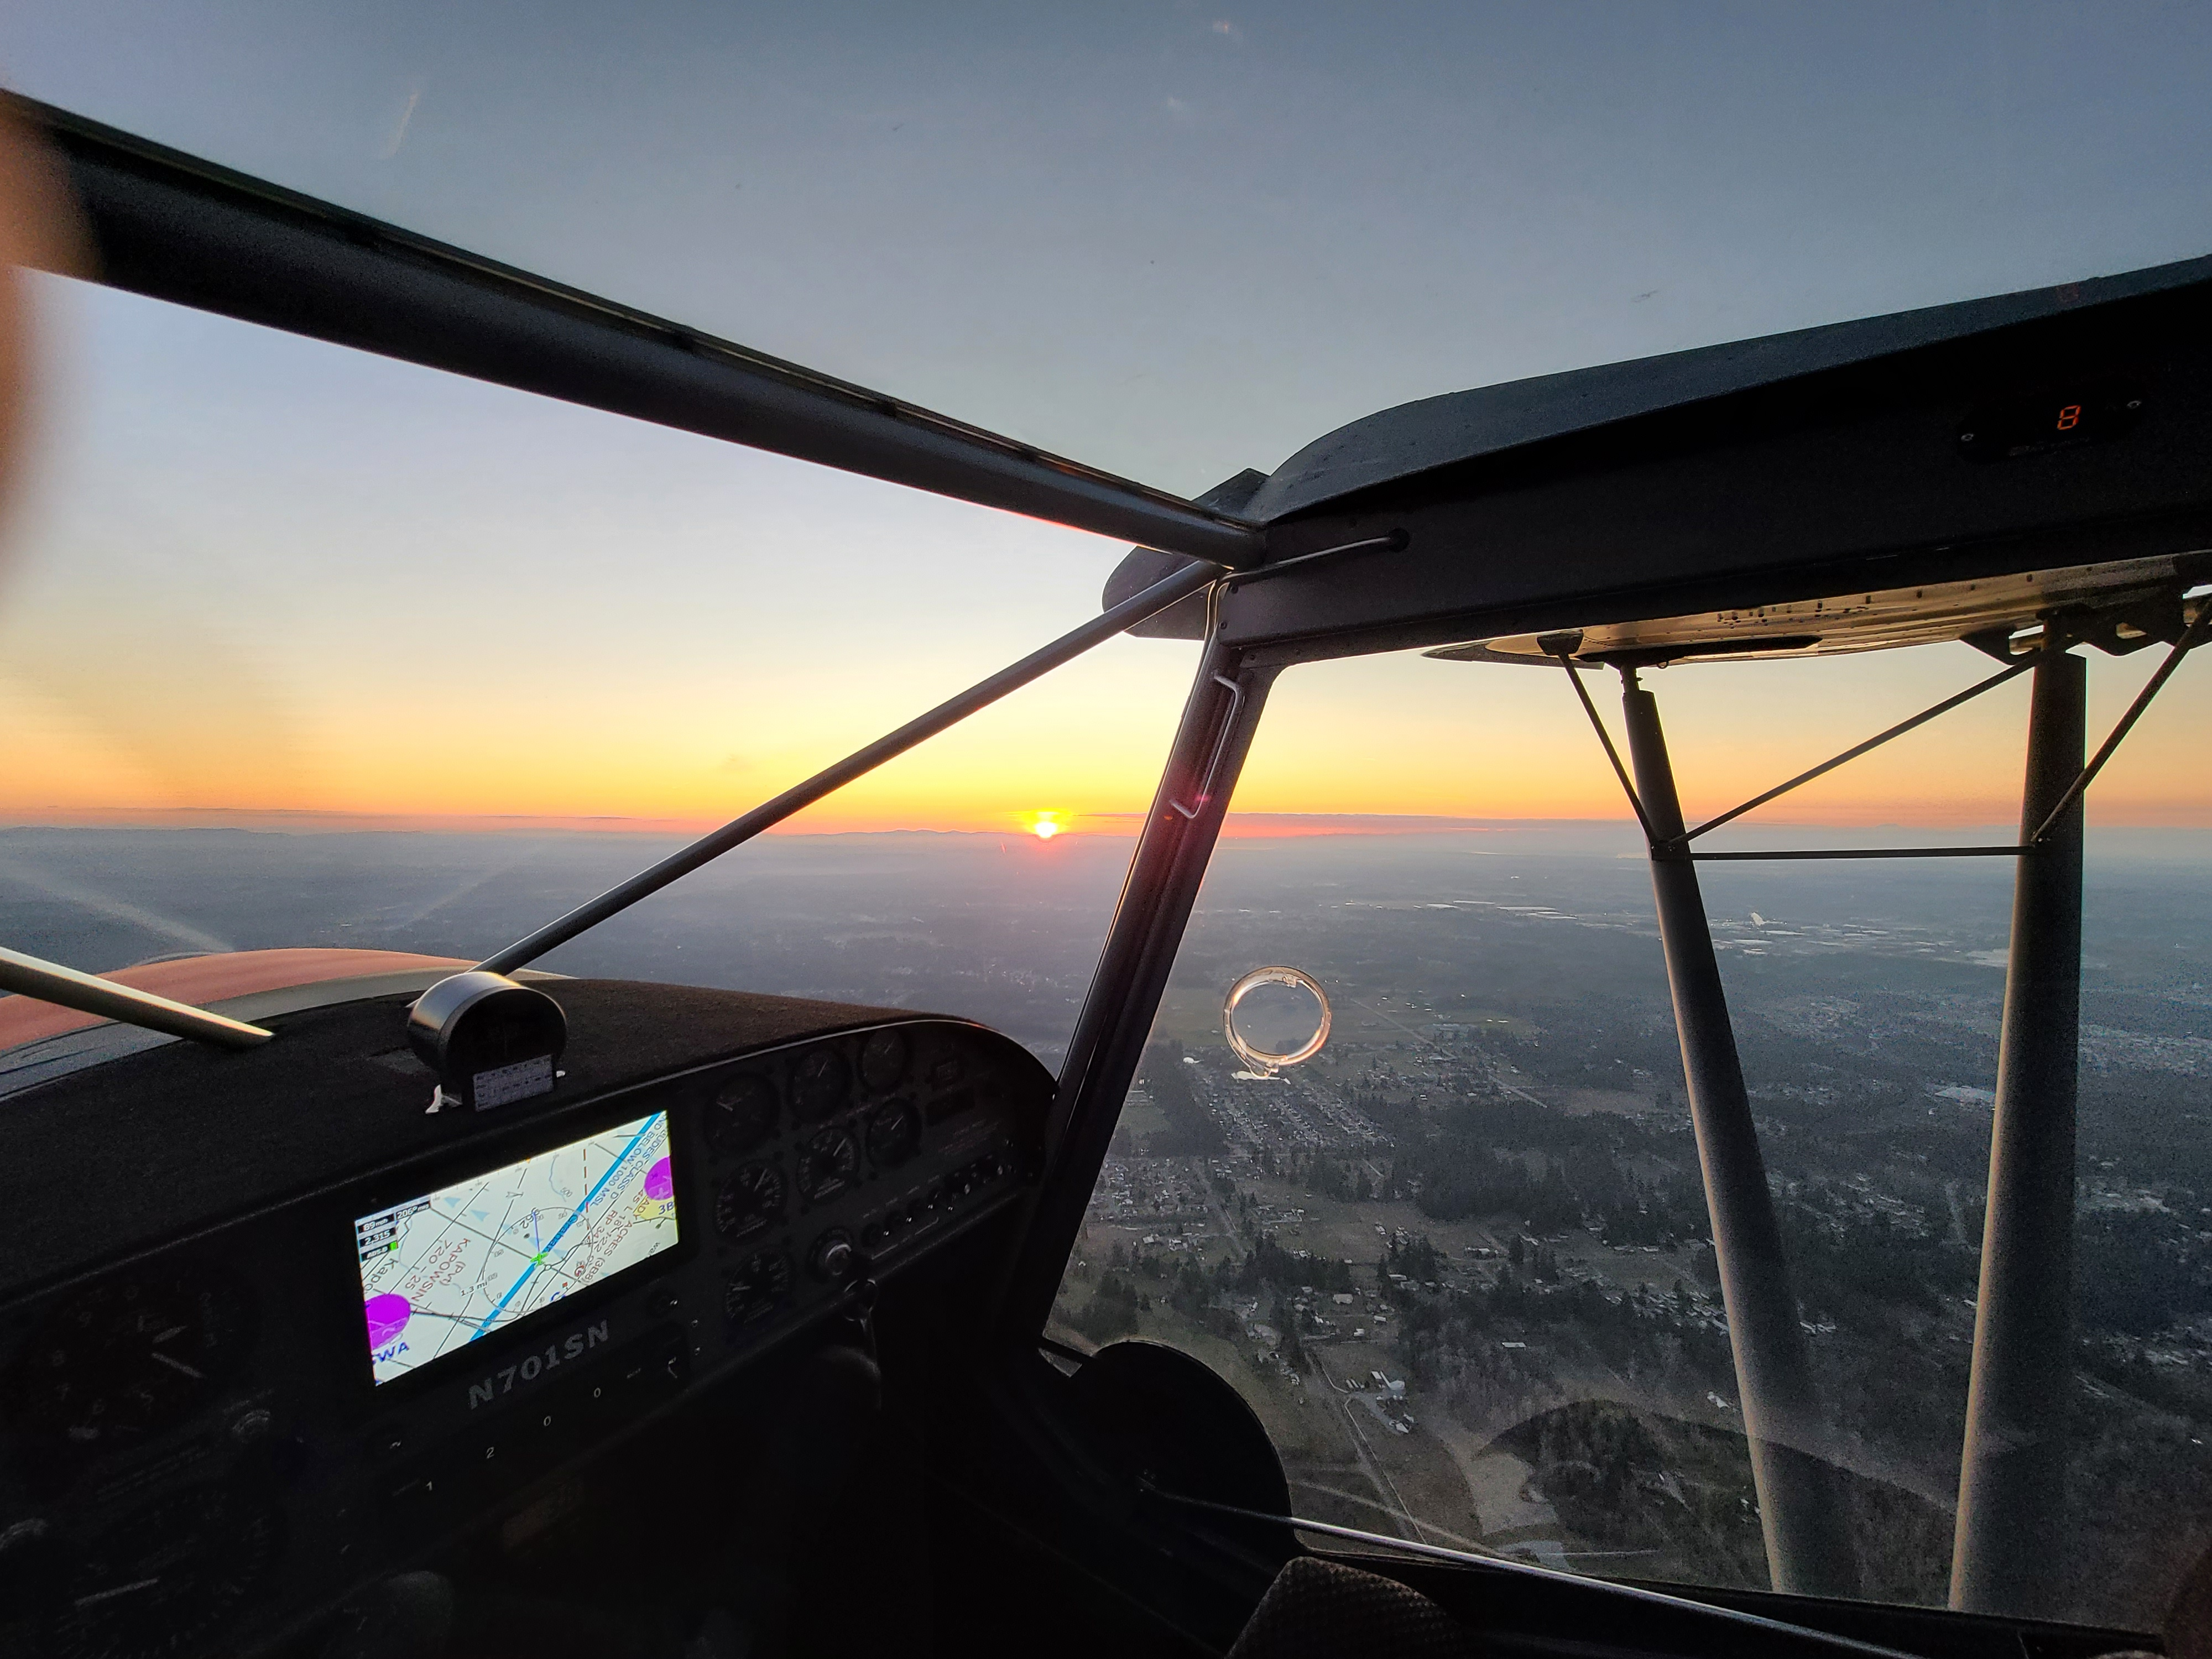 Sunset: What A View!